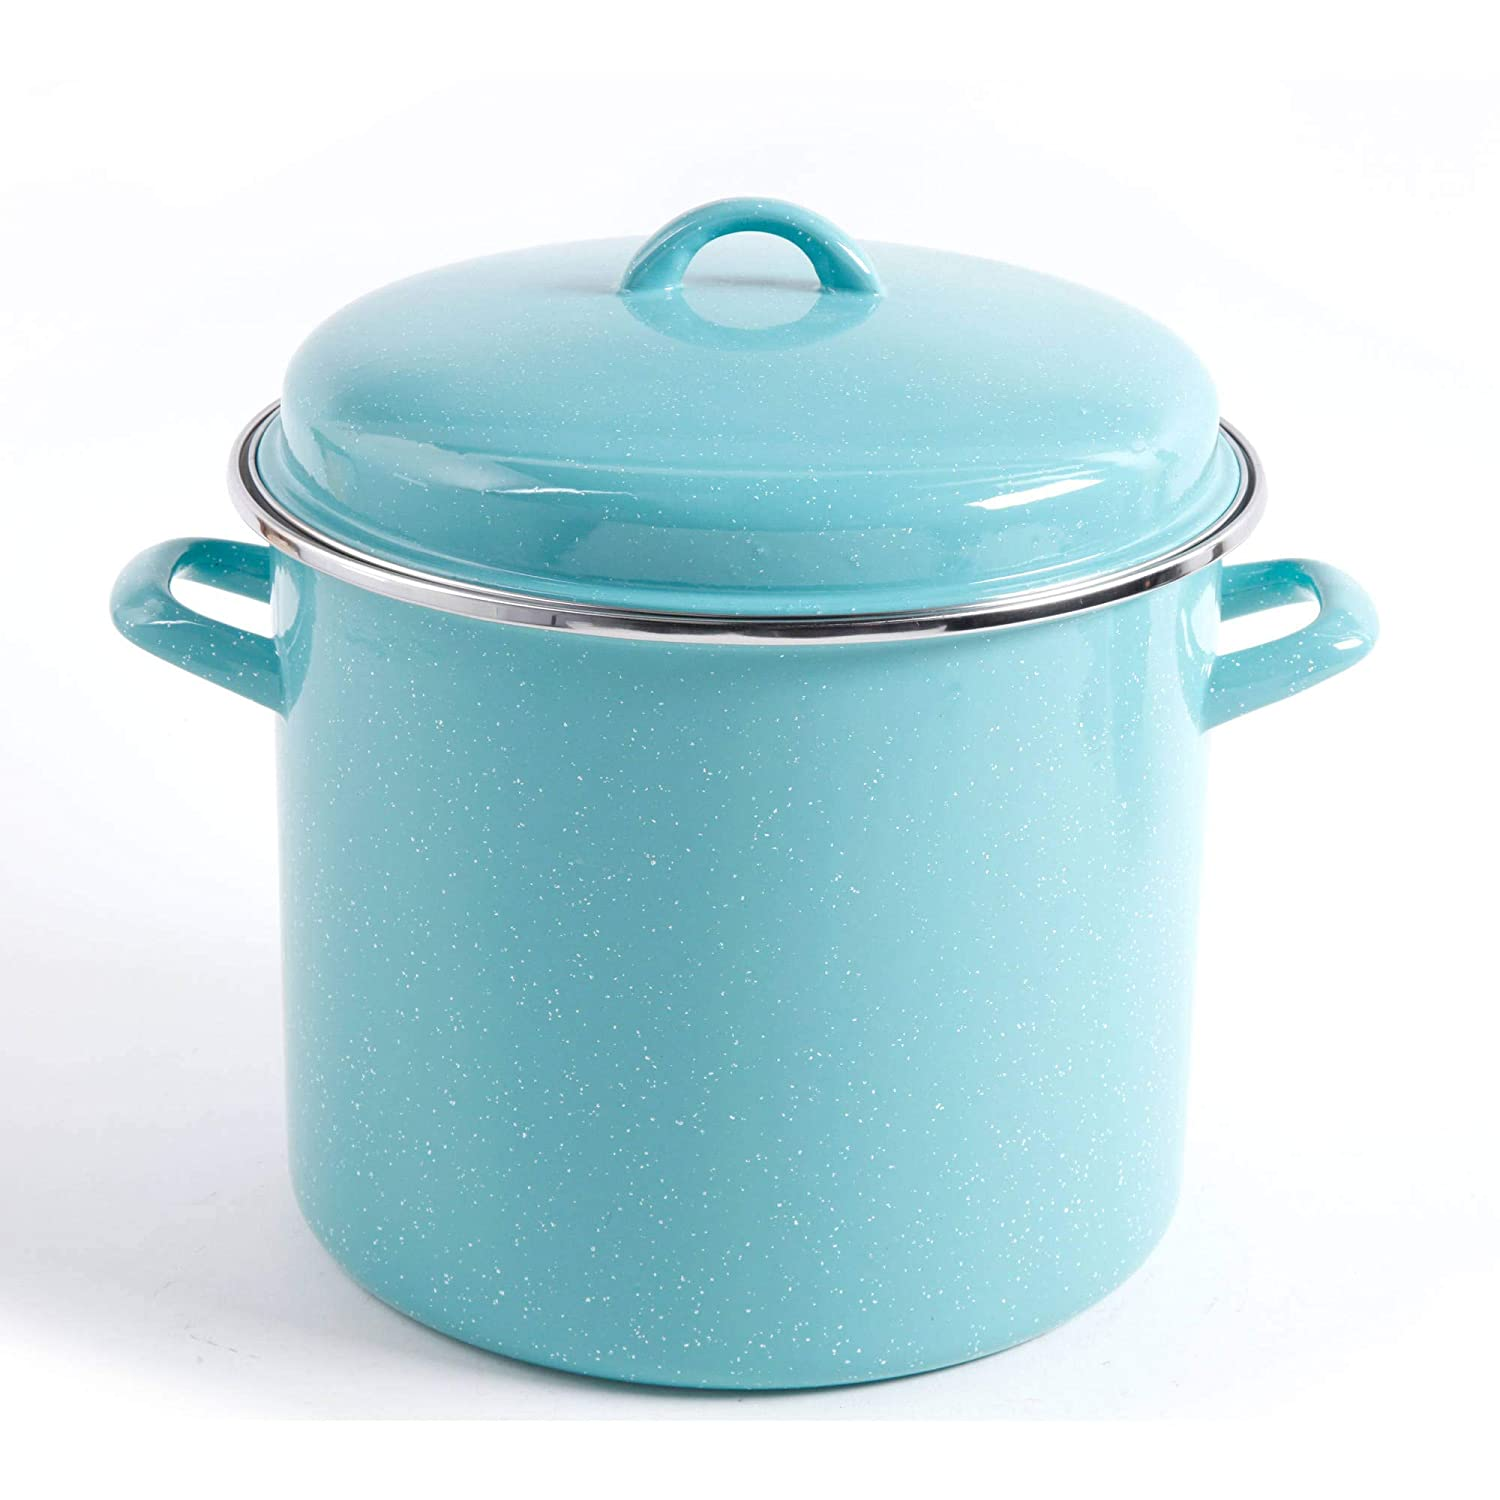 The Pioneer Woman Vintage Speckle 12-Quart Stock Pot with Hollow Side Handles (Turquoise) 82689.02R